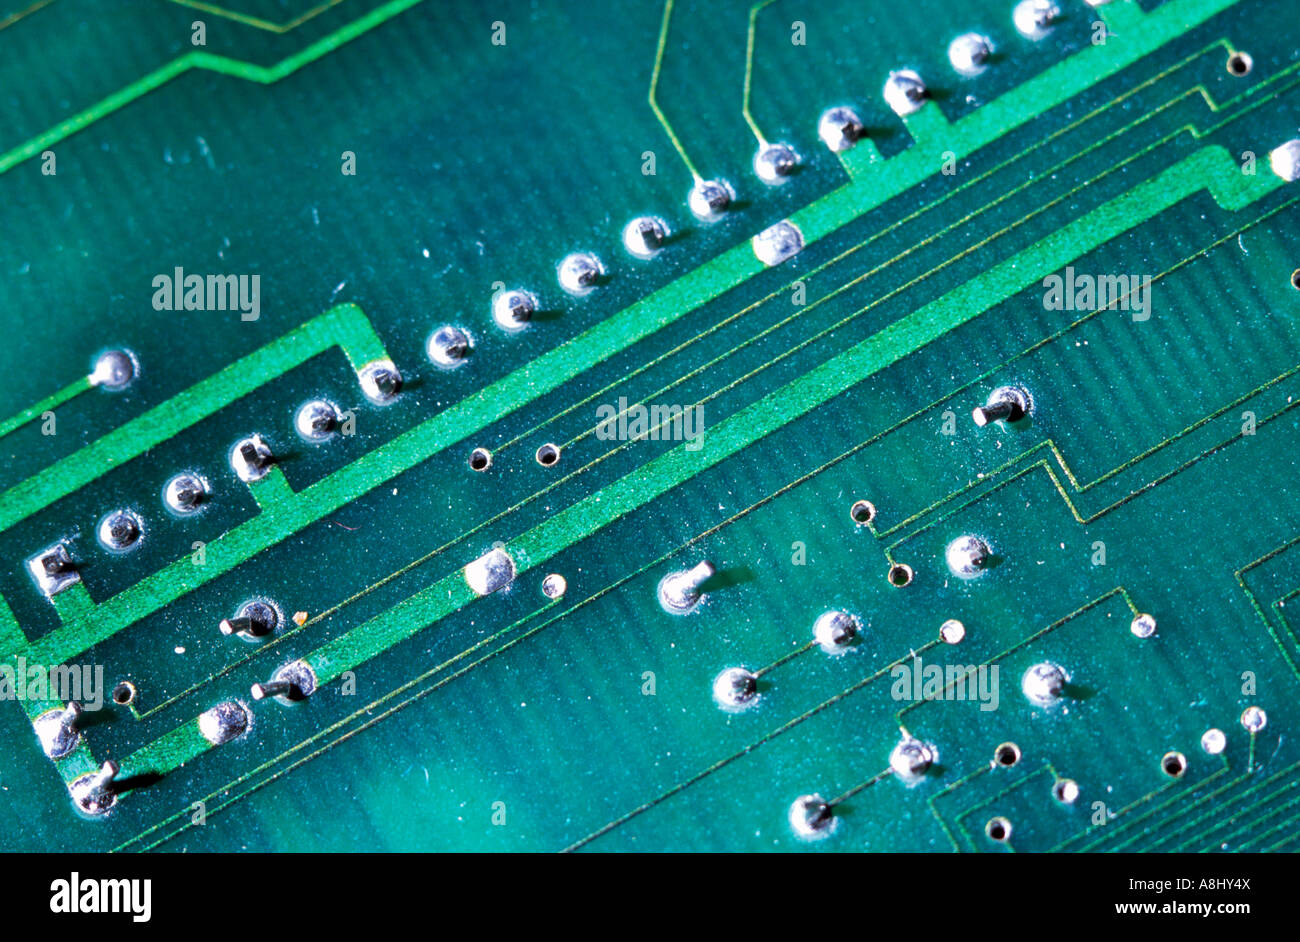 Electronics printed circuit board showing conductive traces and through hole connections - Stock Image